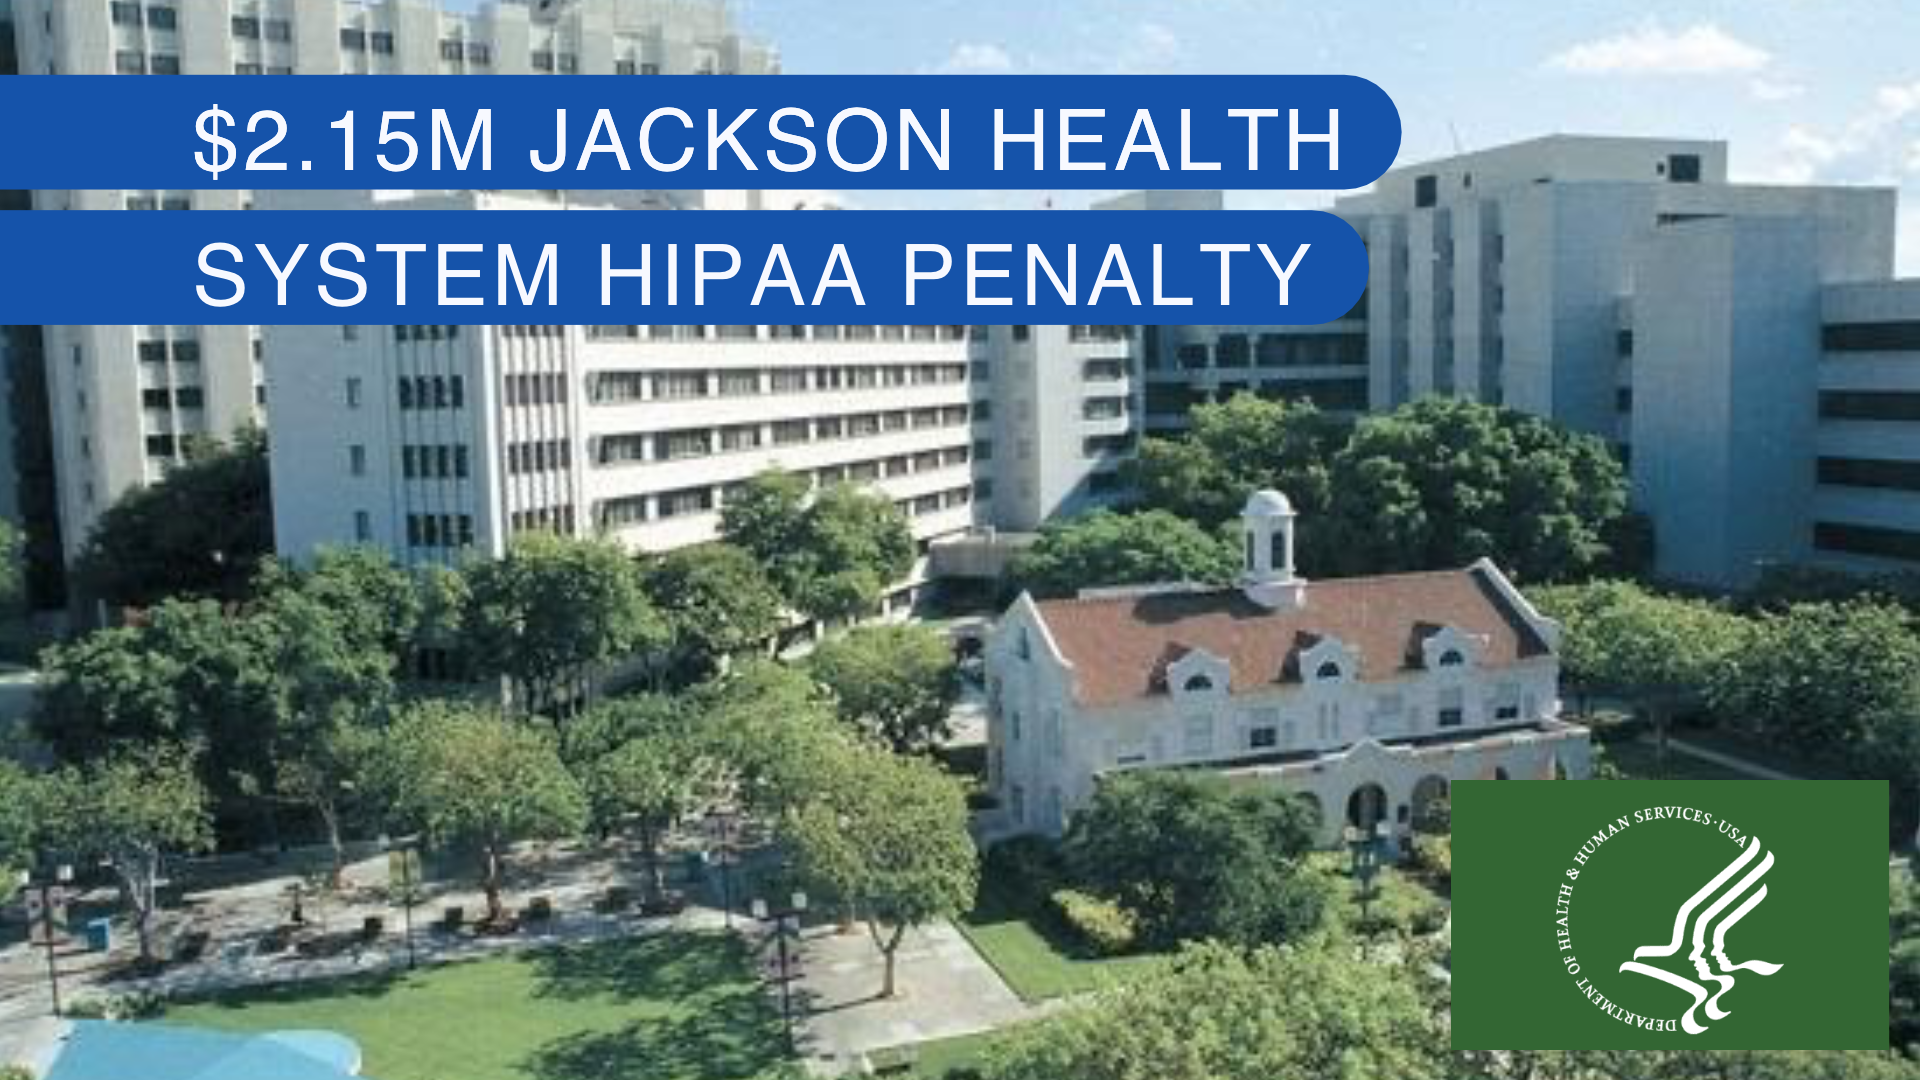 Jackson Health System Nailed With $2.15 Million Plus  Penalty For Violating HIPAA